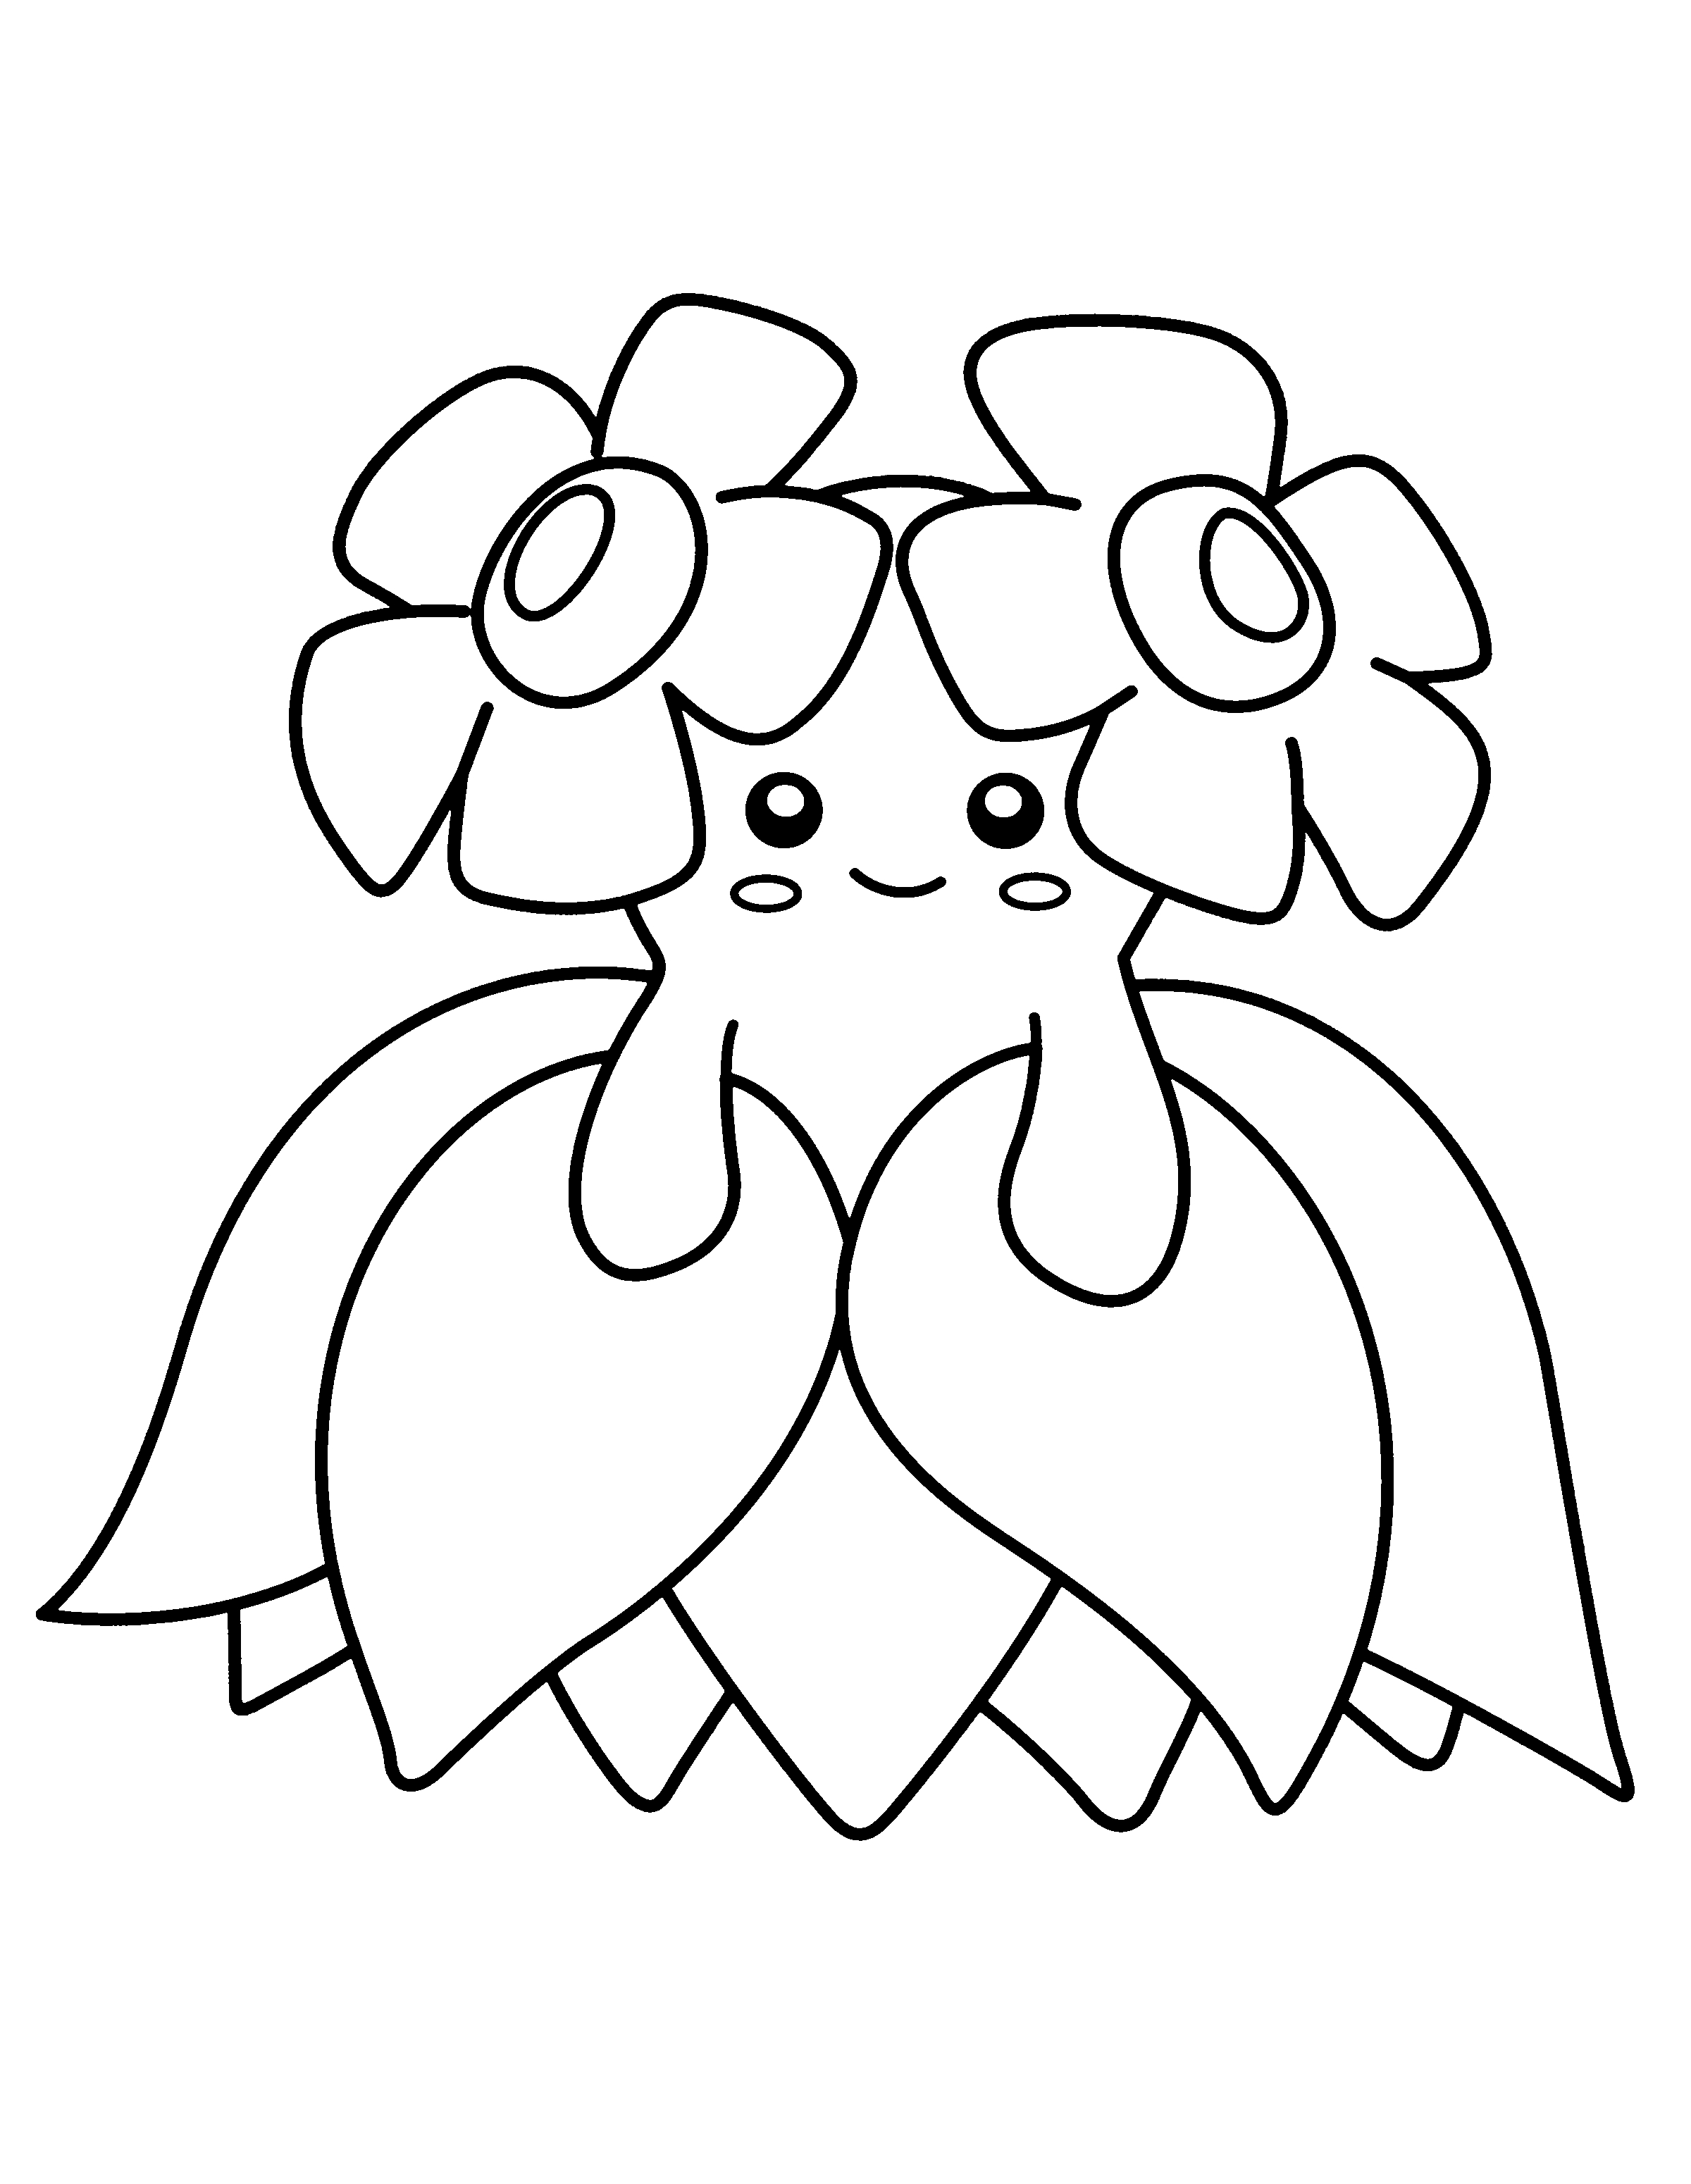 25 Zelda Coloring Pages Compilation | FREE COLORING PAGES - Part 3